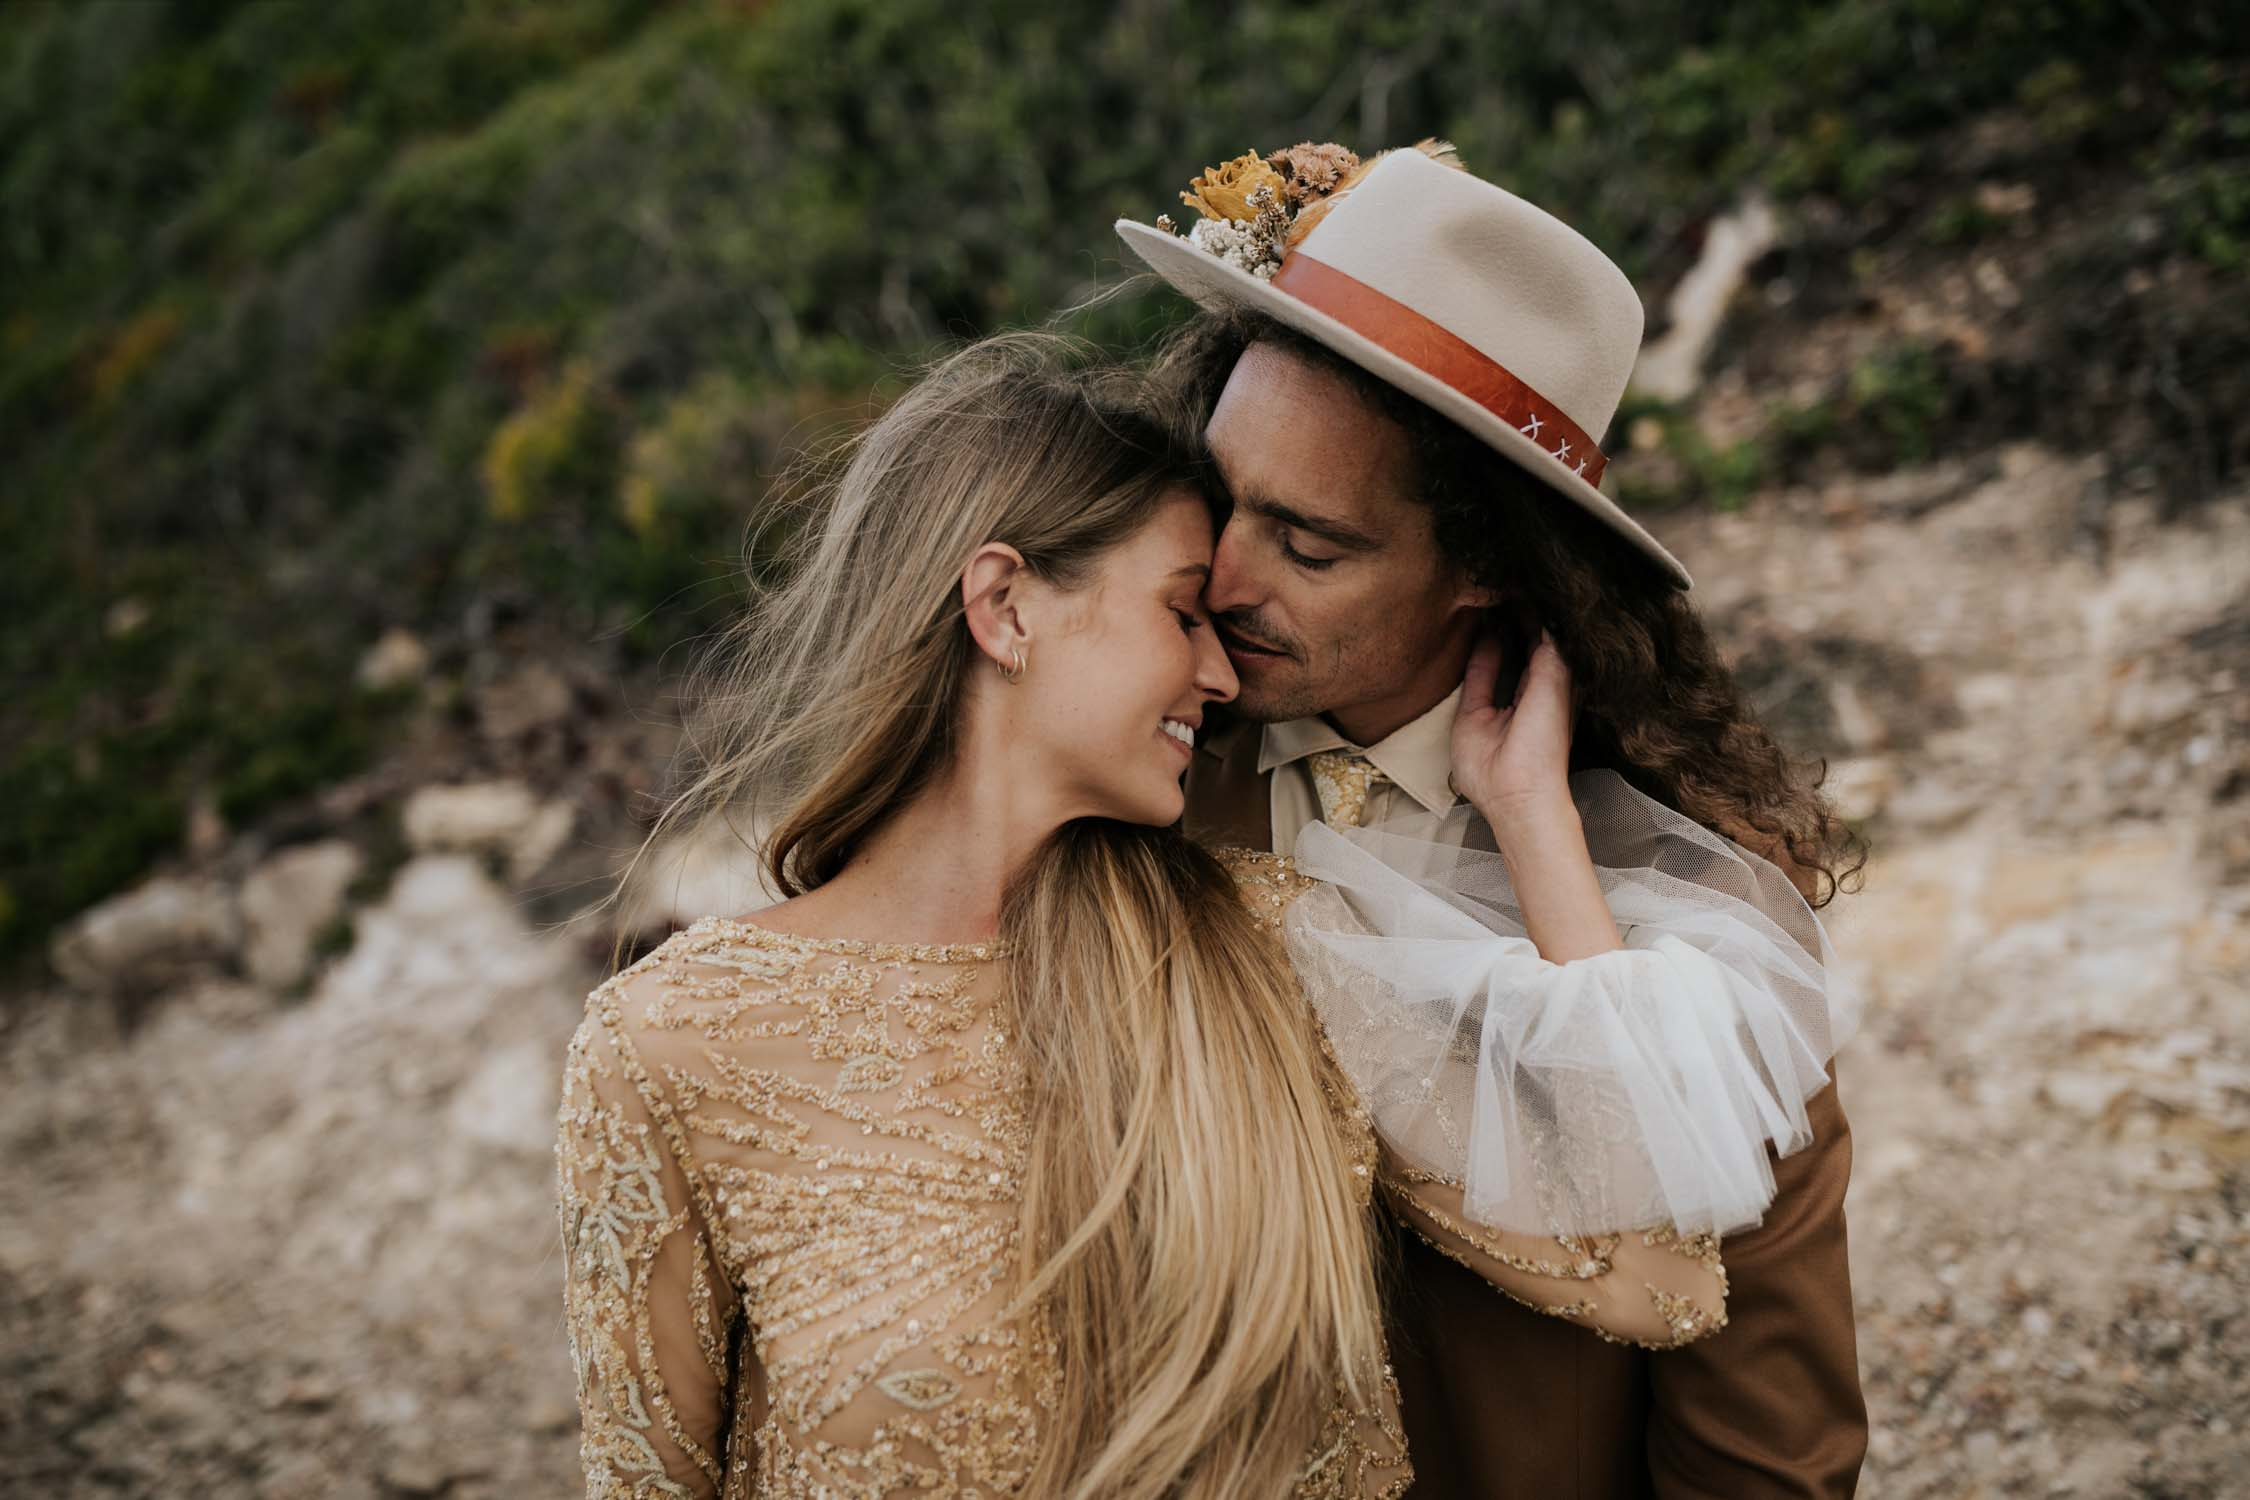 Photo by Vancouver Photographer of groom wearing brown suite, beige shirt, and felt hat kissing bride wearing gypsy wedding dress with flared long sleeves, sheer skirt and gold detailed top at the ocean